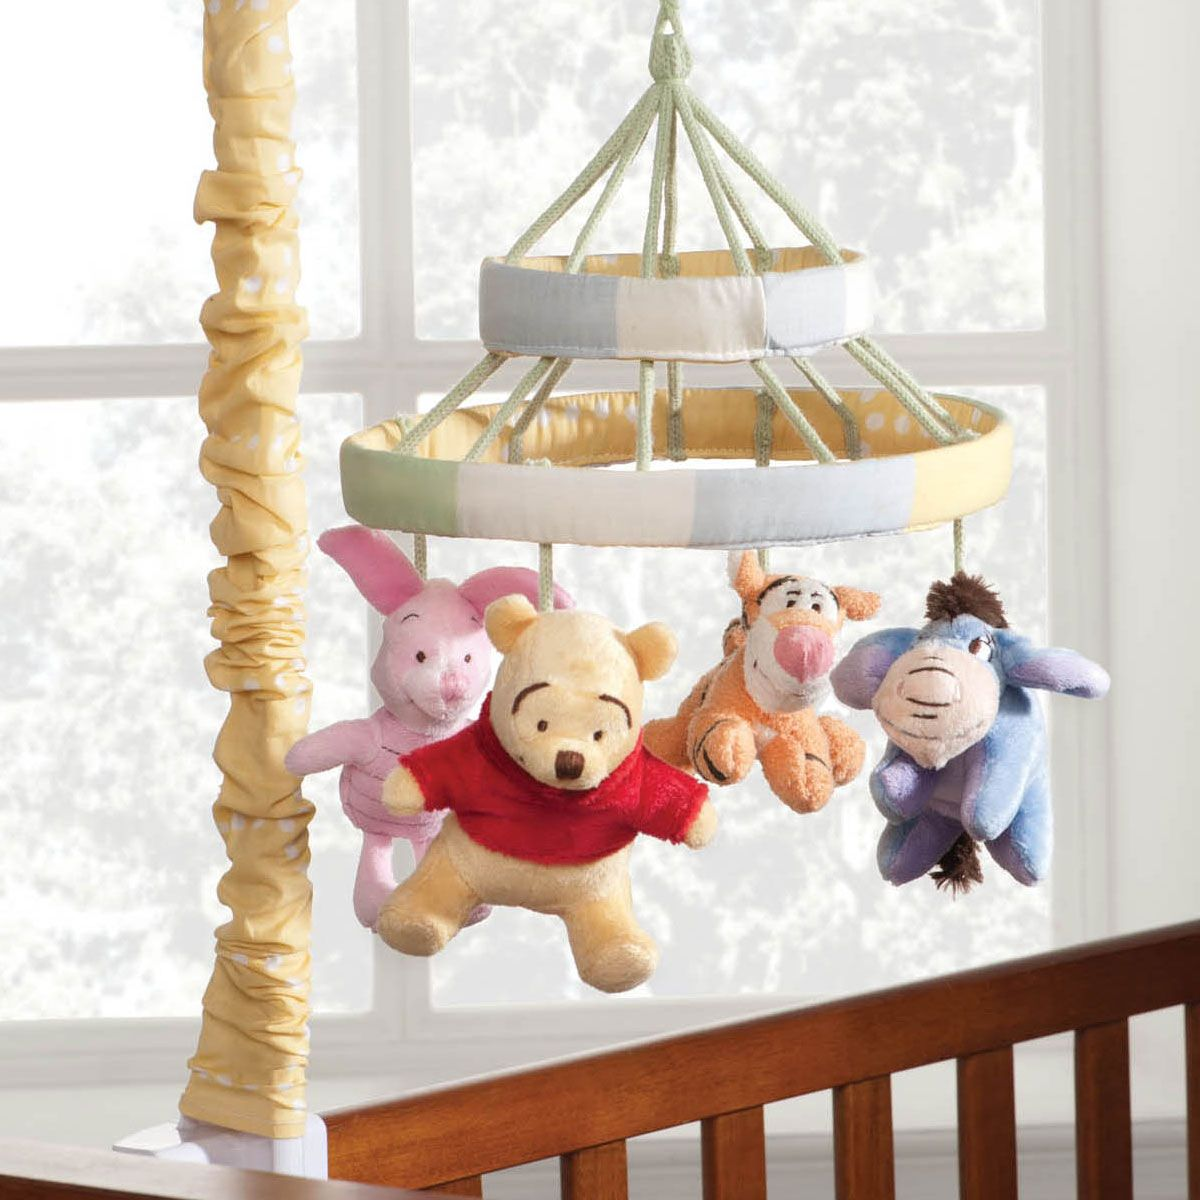 Mobile for crib babies r us - Buy Winnie The Pooh Plush Stuffed Animals Baby Blankies And Rattles Lego Sets And Much More From Toys R Us Bring The Hunny Lovin Bear Home Shop Now